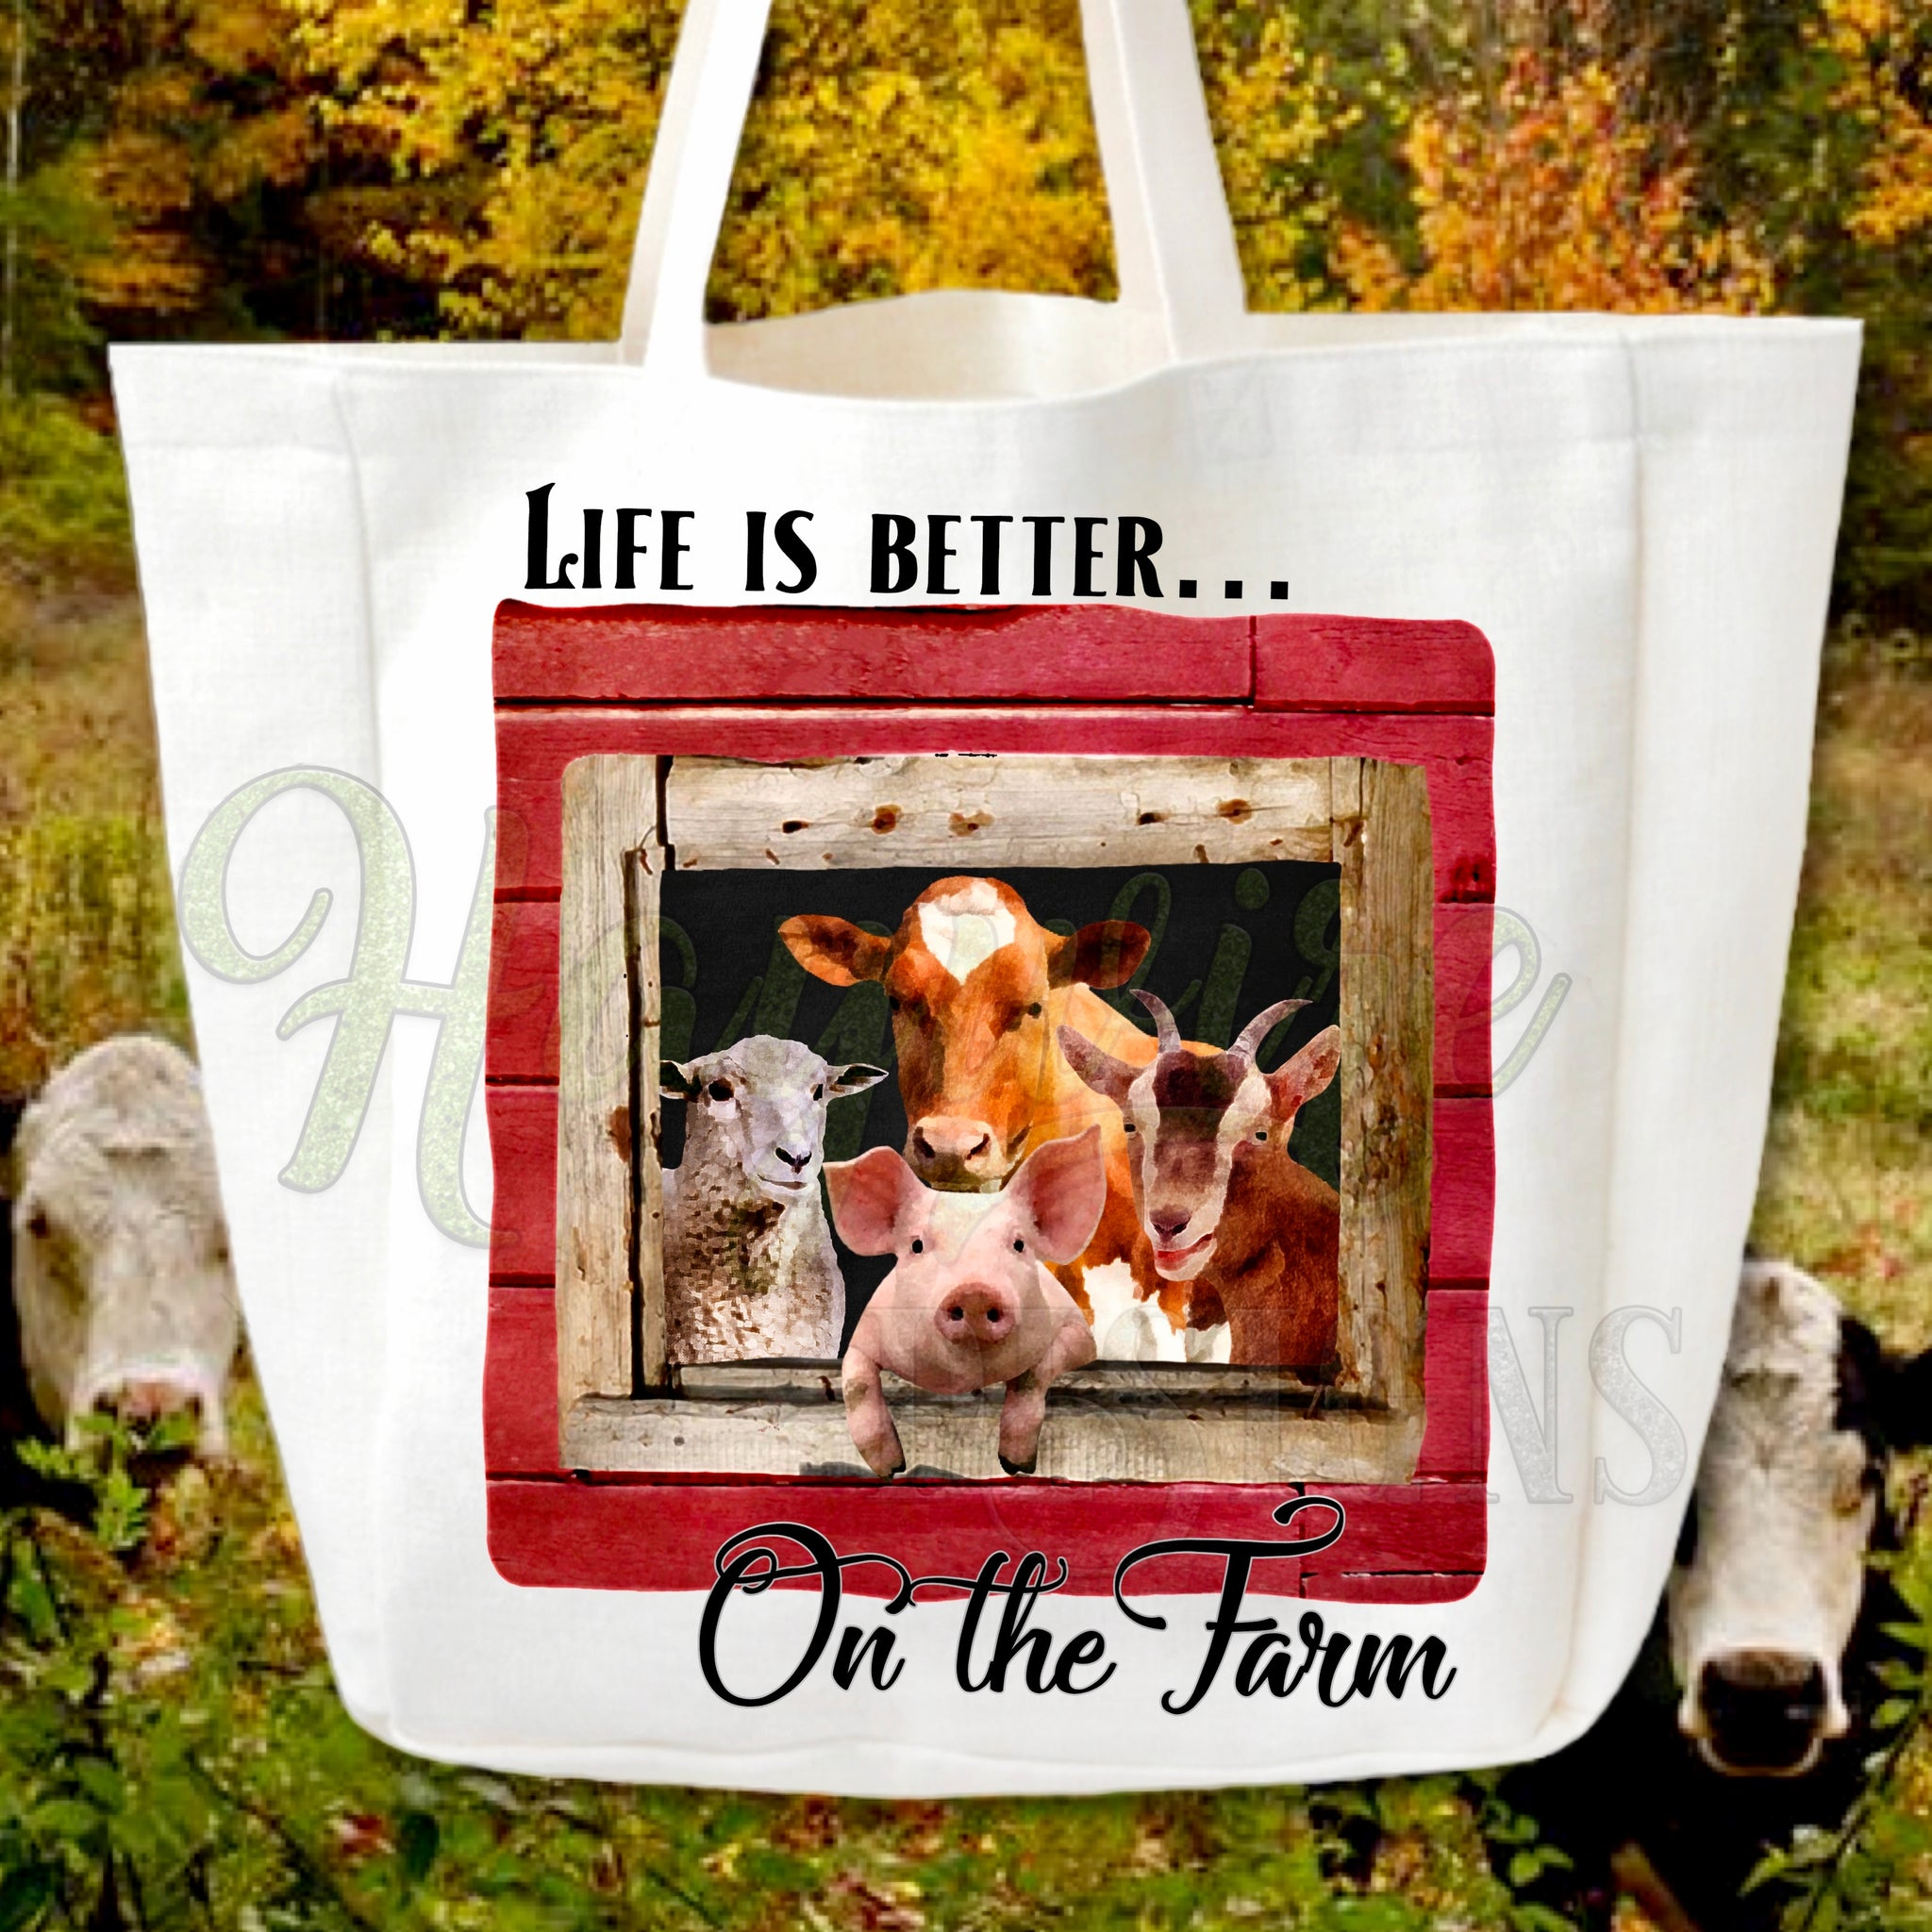 LIFE IS BETTER ON THE FARM - Worded & Non Worded